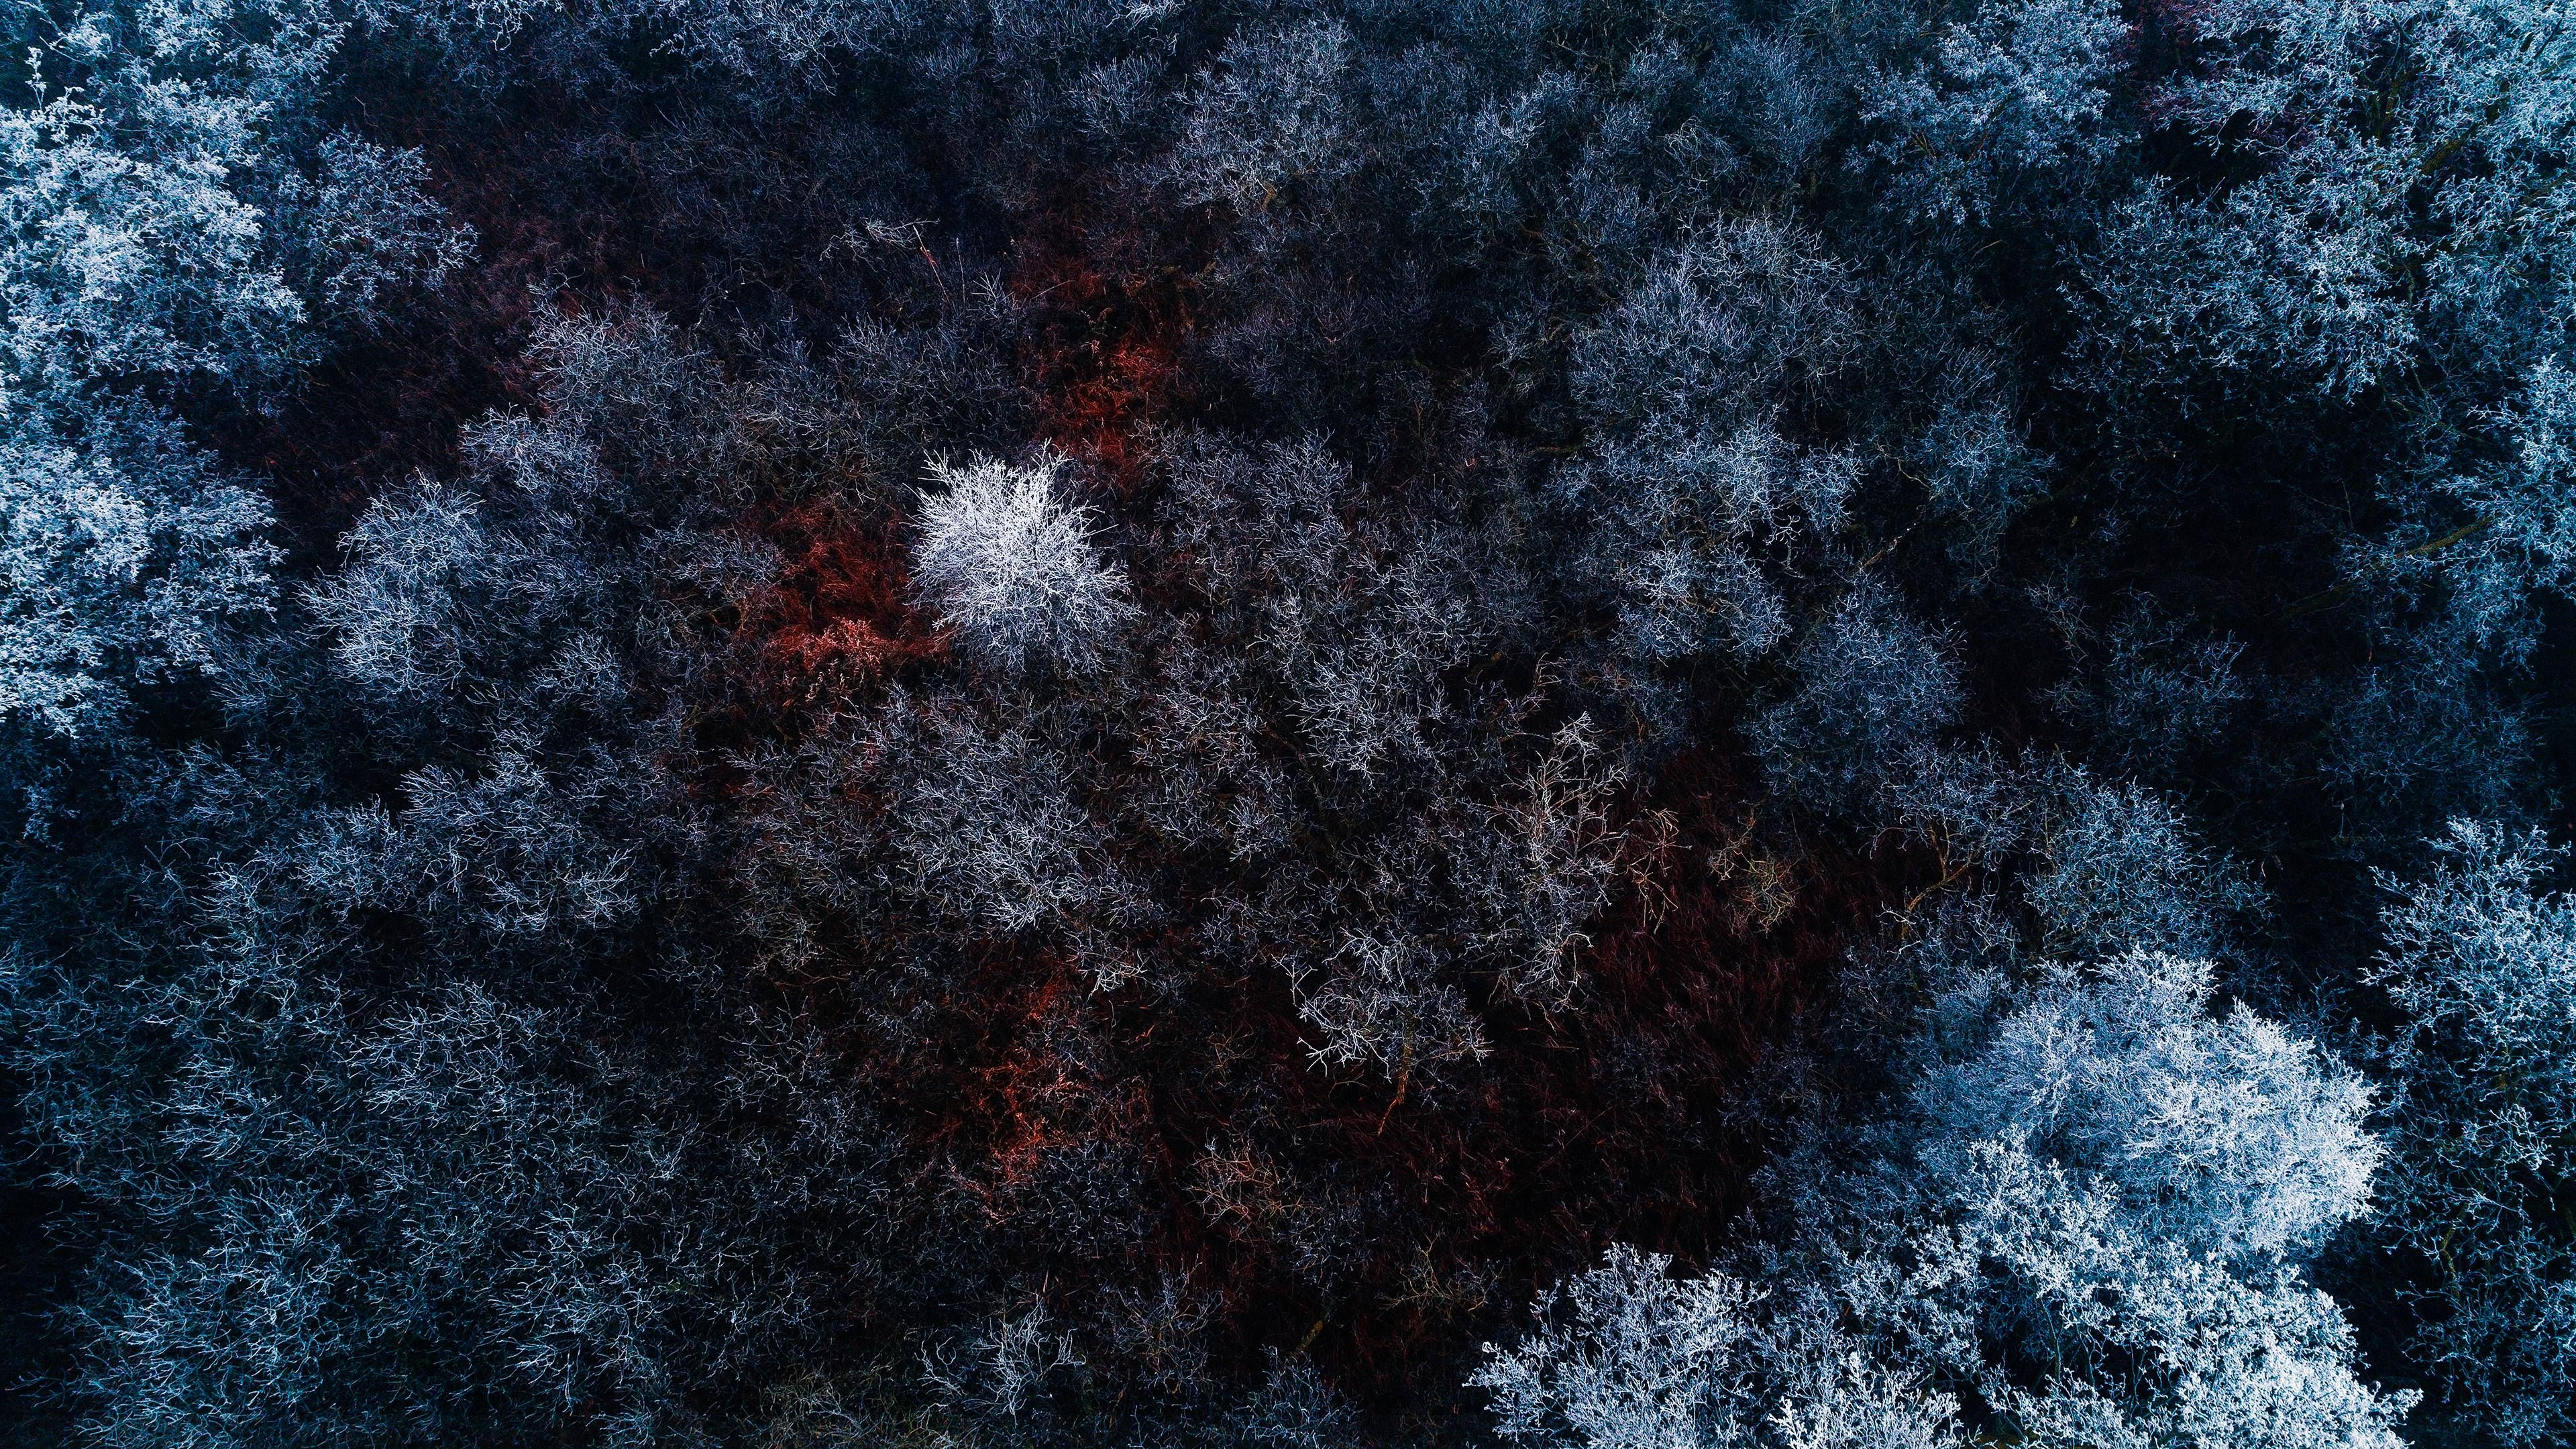 The Red Ice Forest